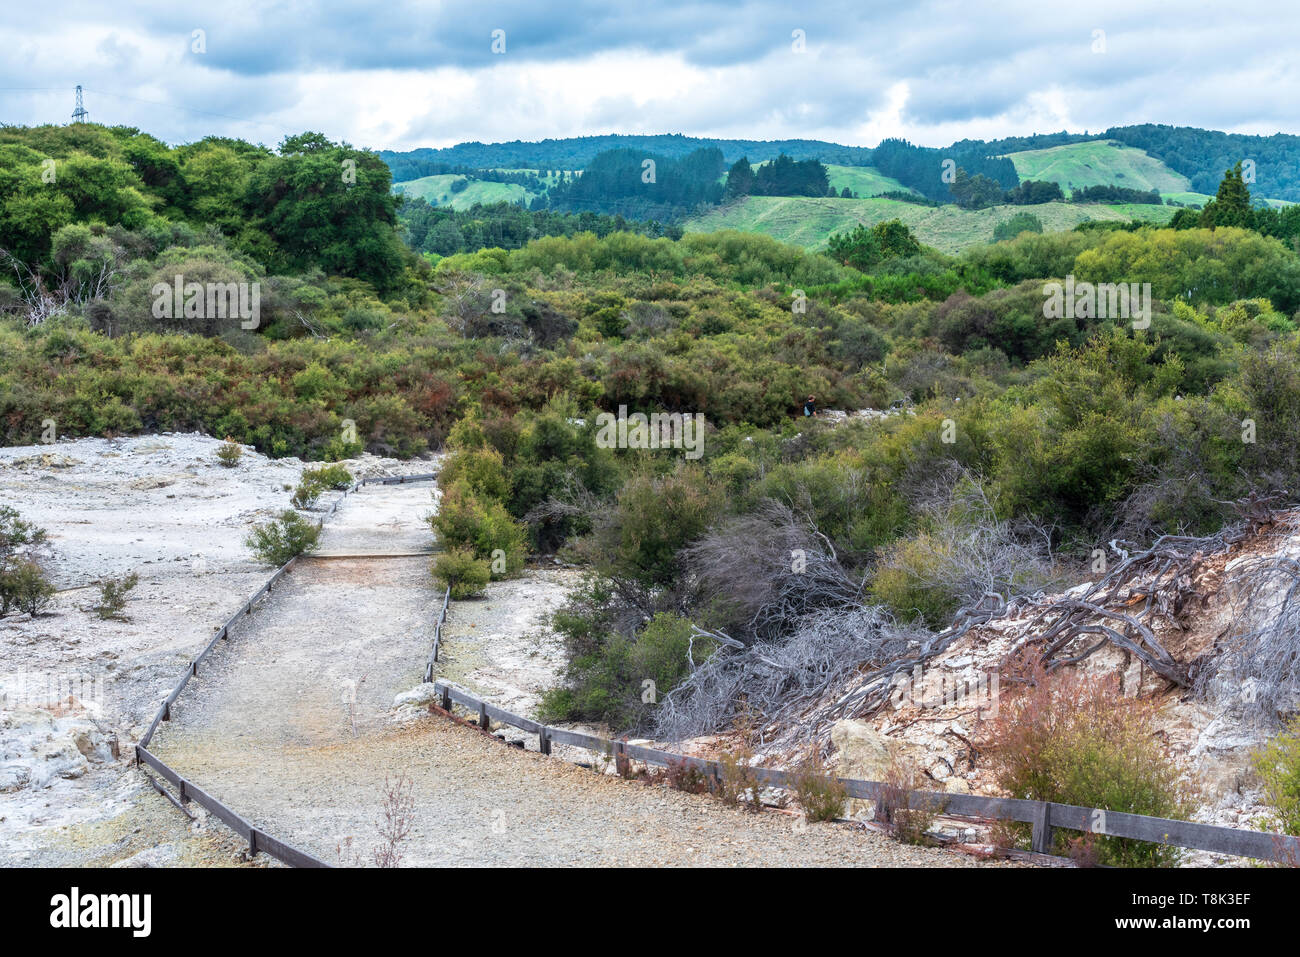 Landscape photo from Hell's Gate in New Zealand overlooking the surrounding countryside. - Stock Image